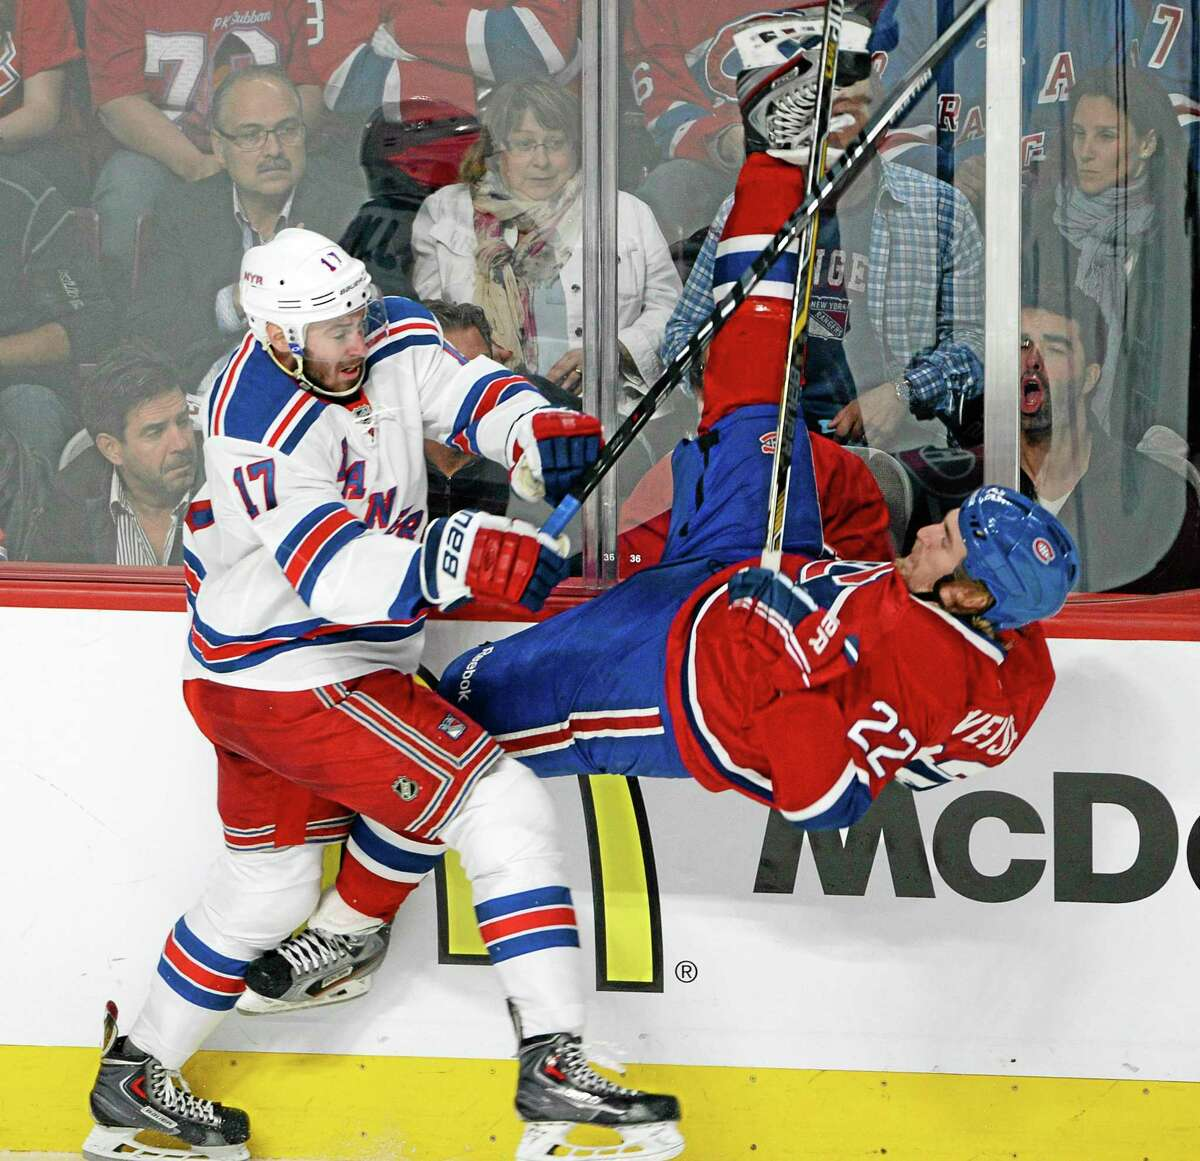 The New York Rangers' John Moore, left, takes the Canadiens' Dale Weise into the boards during the first period of Game 5 of the Eastern Conference finals on Tuesday in Montreal.